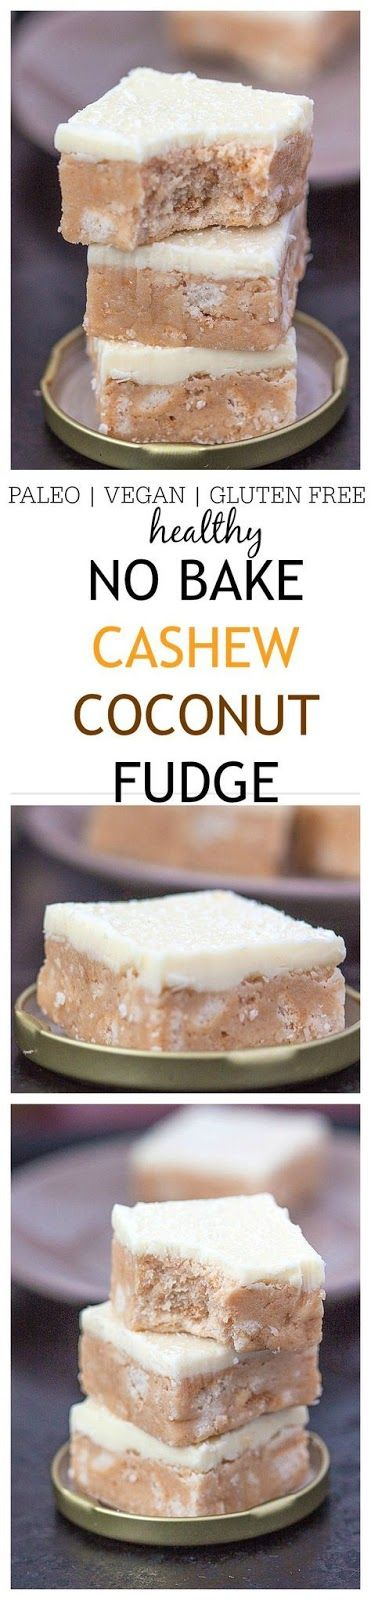 Paleo Cashew Coconut Protein Fudge | Food And Cake Recipes